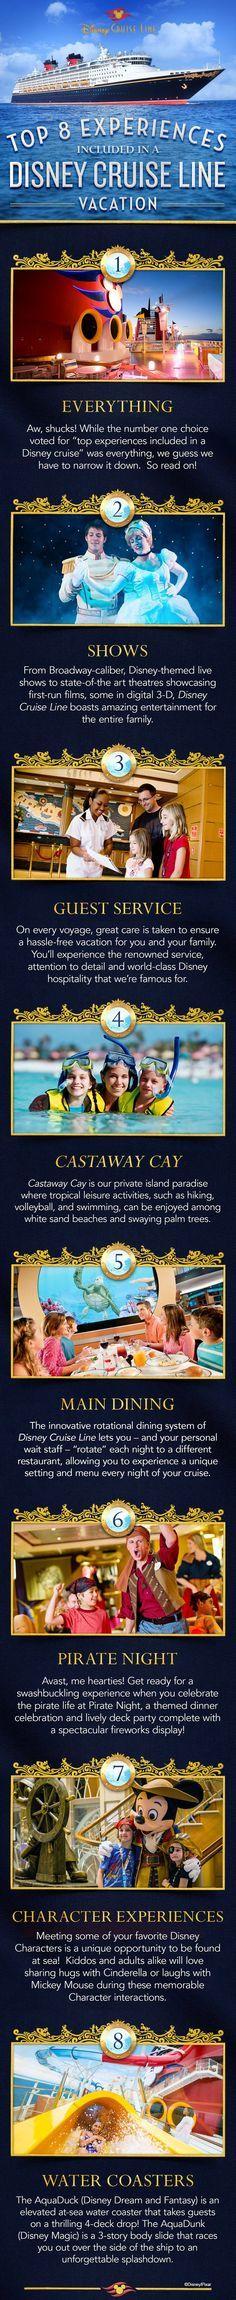 From Broadway-caliber shows to Castaway Cay, Disney Cruise Line's private island paradise, check out these Top 8 Experiences that are included in your Disney cruise.